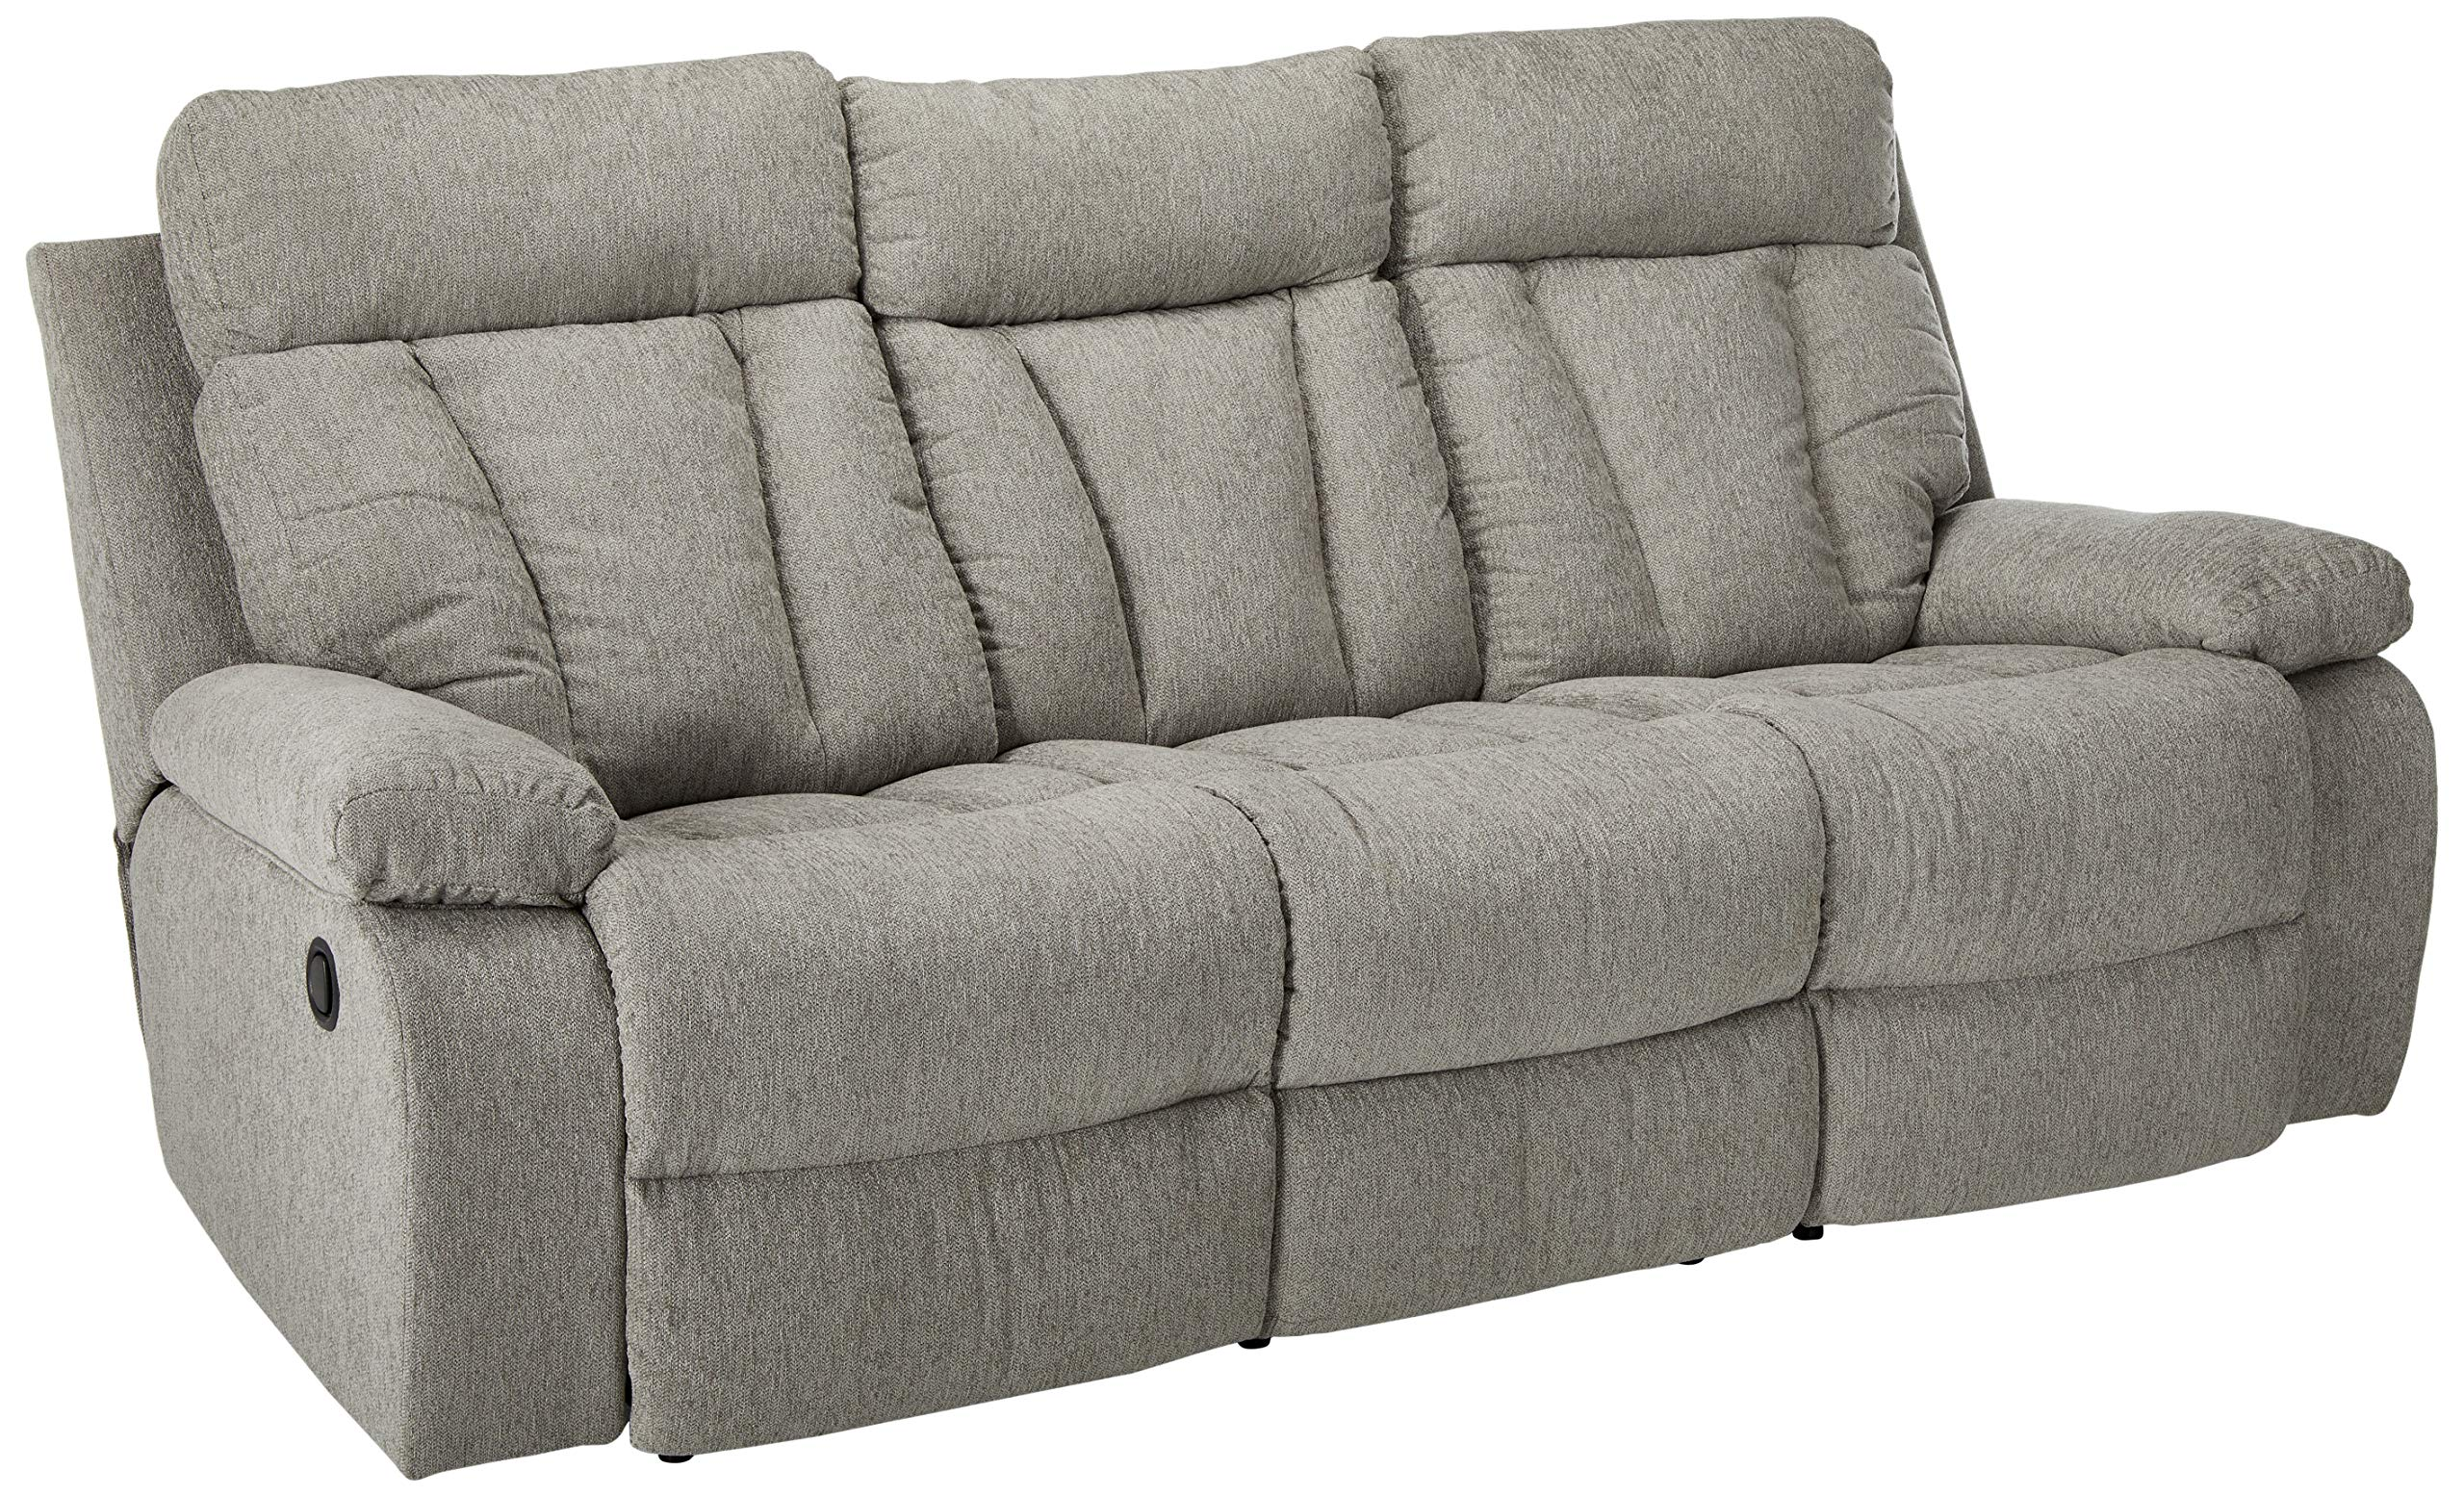 Signature Design by Ashley Mitchiner Reclining Sofa with Drop Down Table, Fog by Signature Design by Ashley